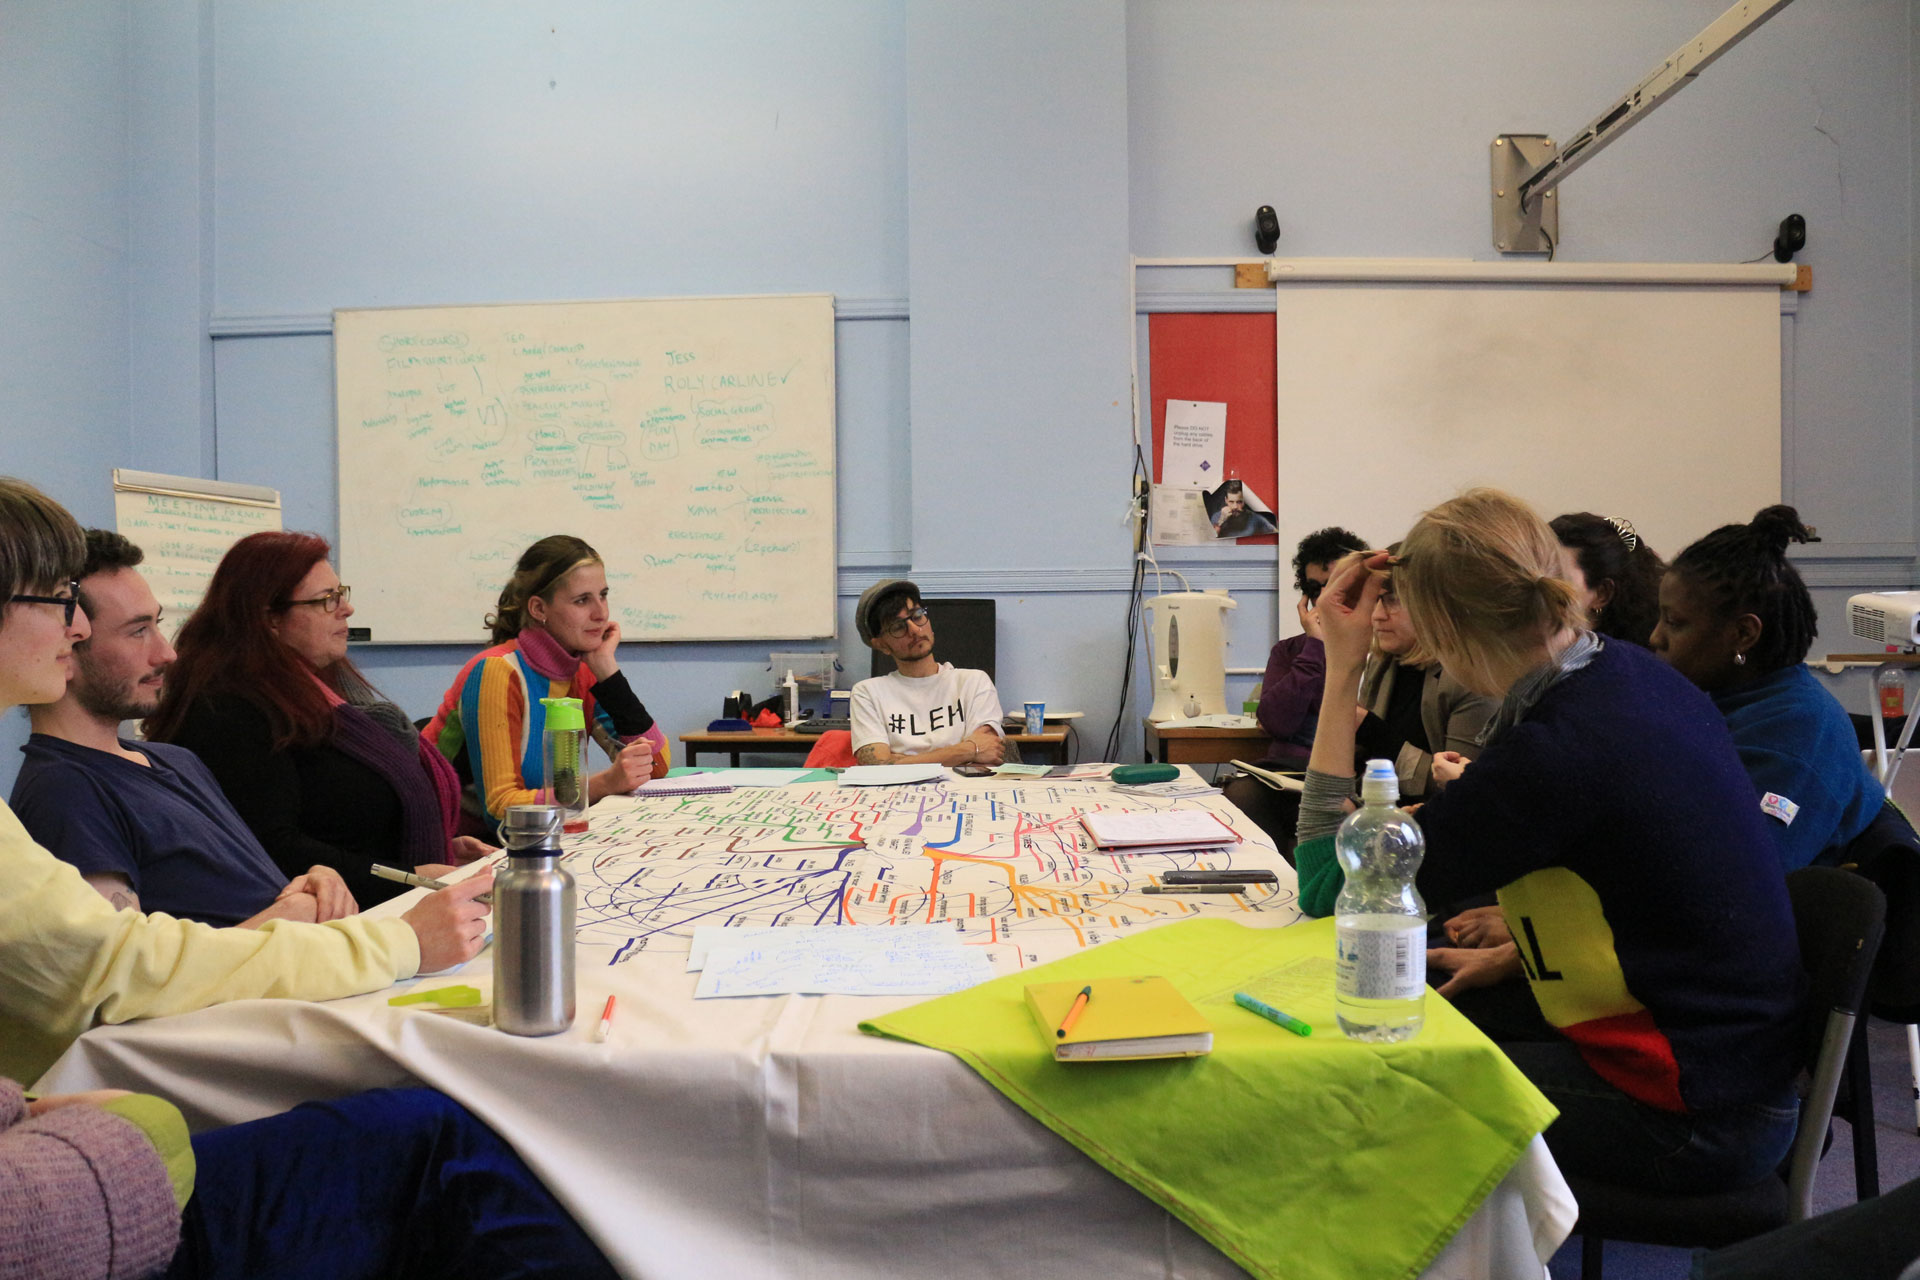 Undervalued energetic economy workshop with Raju Rage, Open School East, Margate, February 2020. Photo courtesy of Open School East